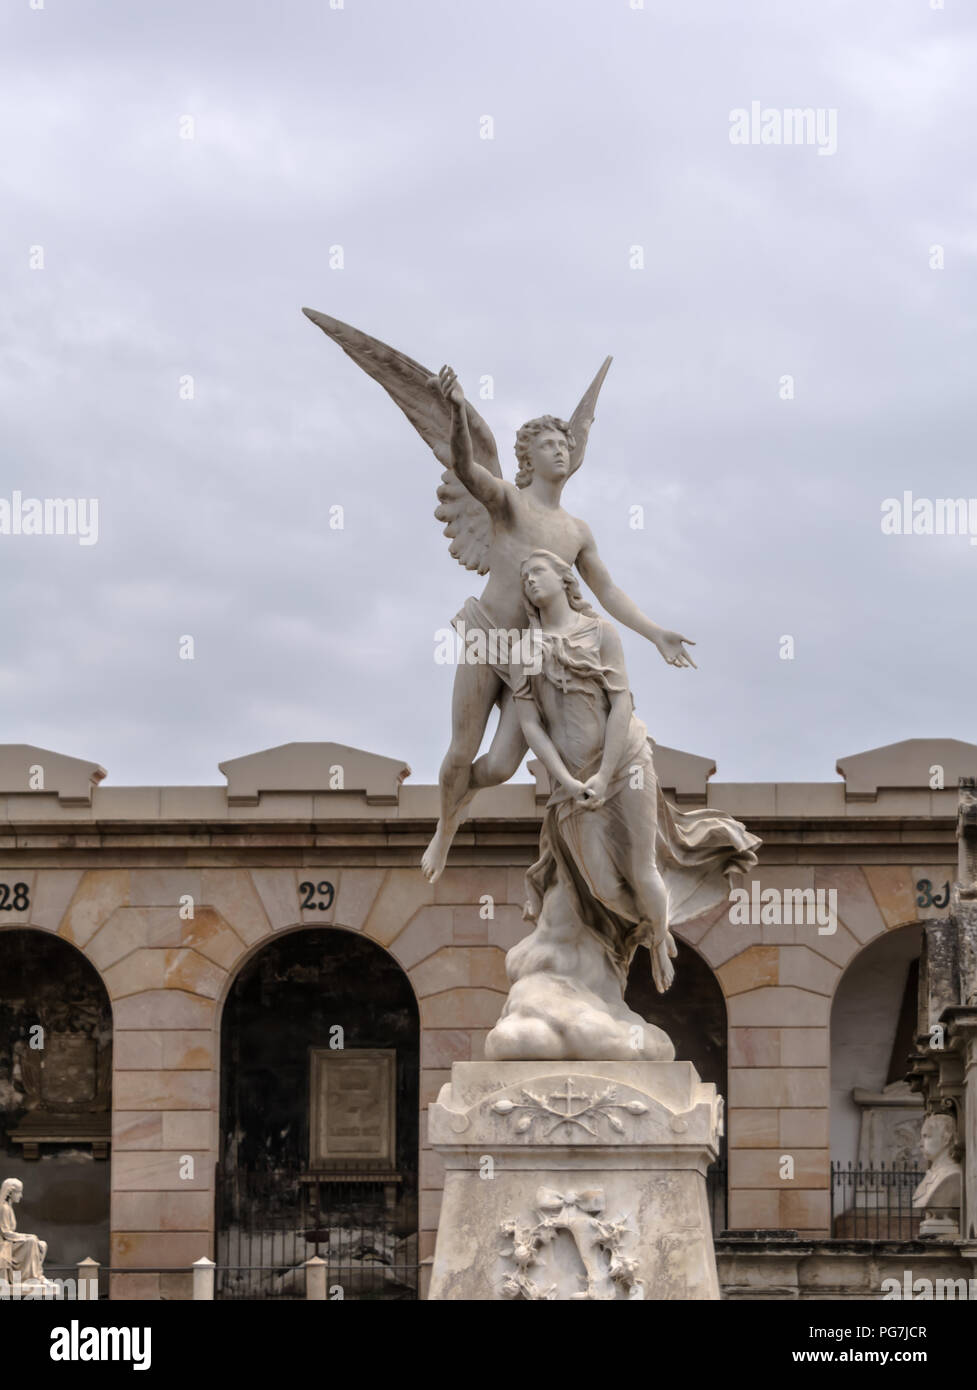 Neoclassic sculpture of a winged angel raising the swooning soul of a maiden to heaven. The statue, carved by Fabiesi, dates to 1880 - Stock Image